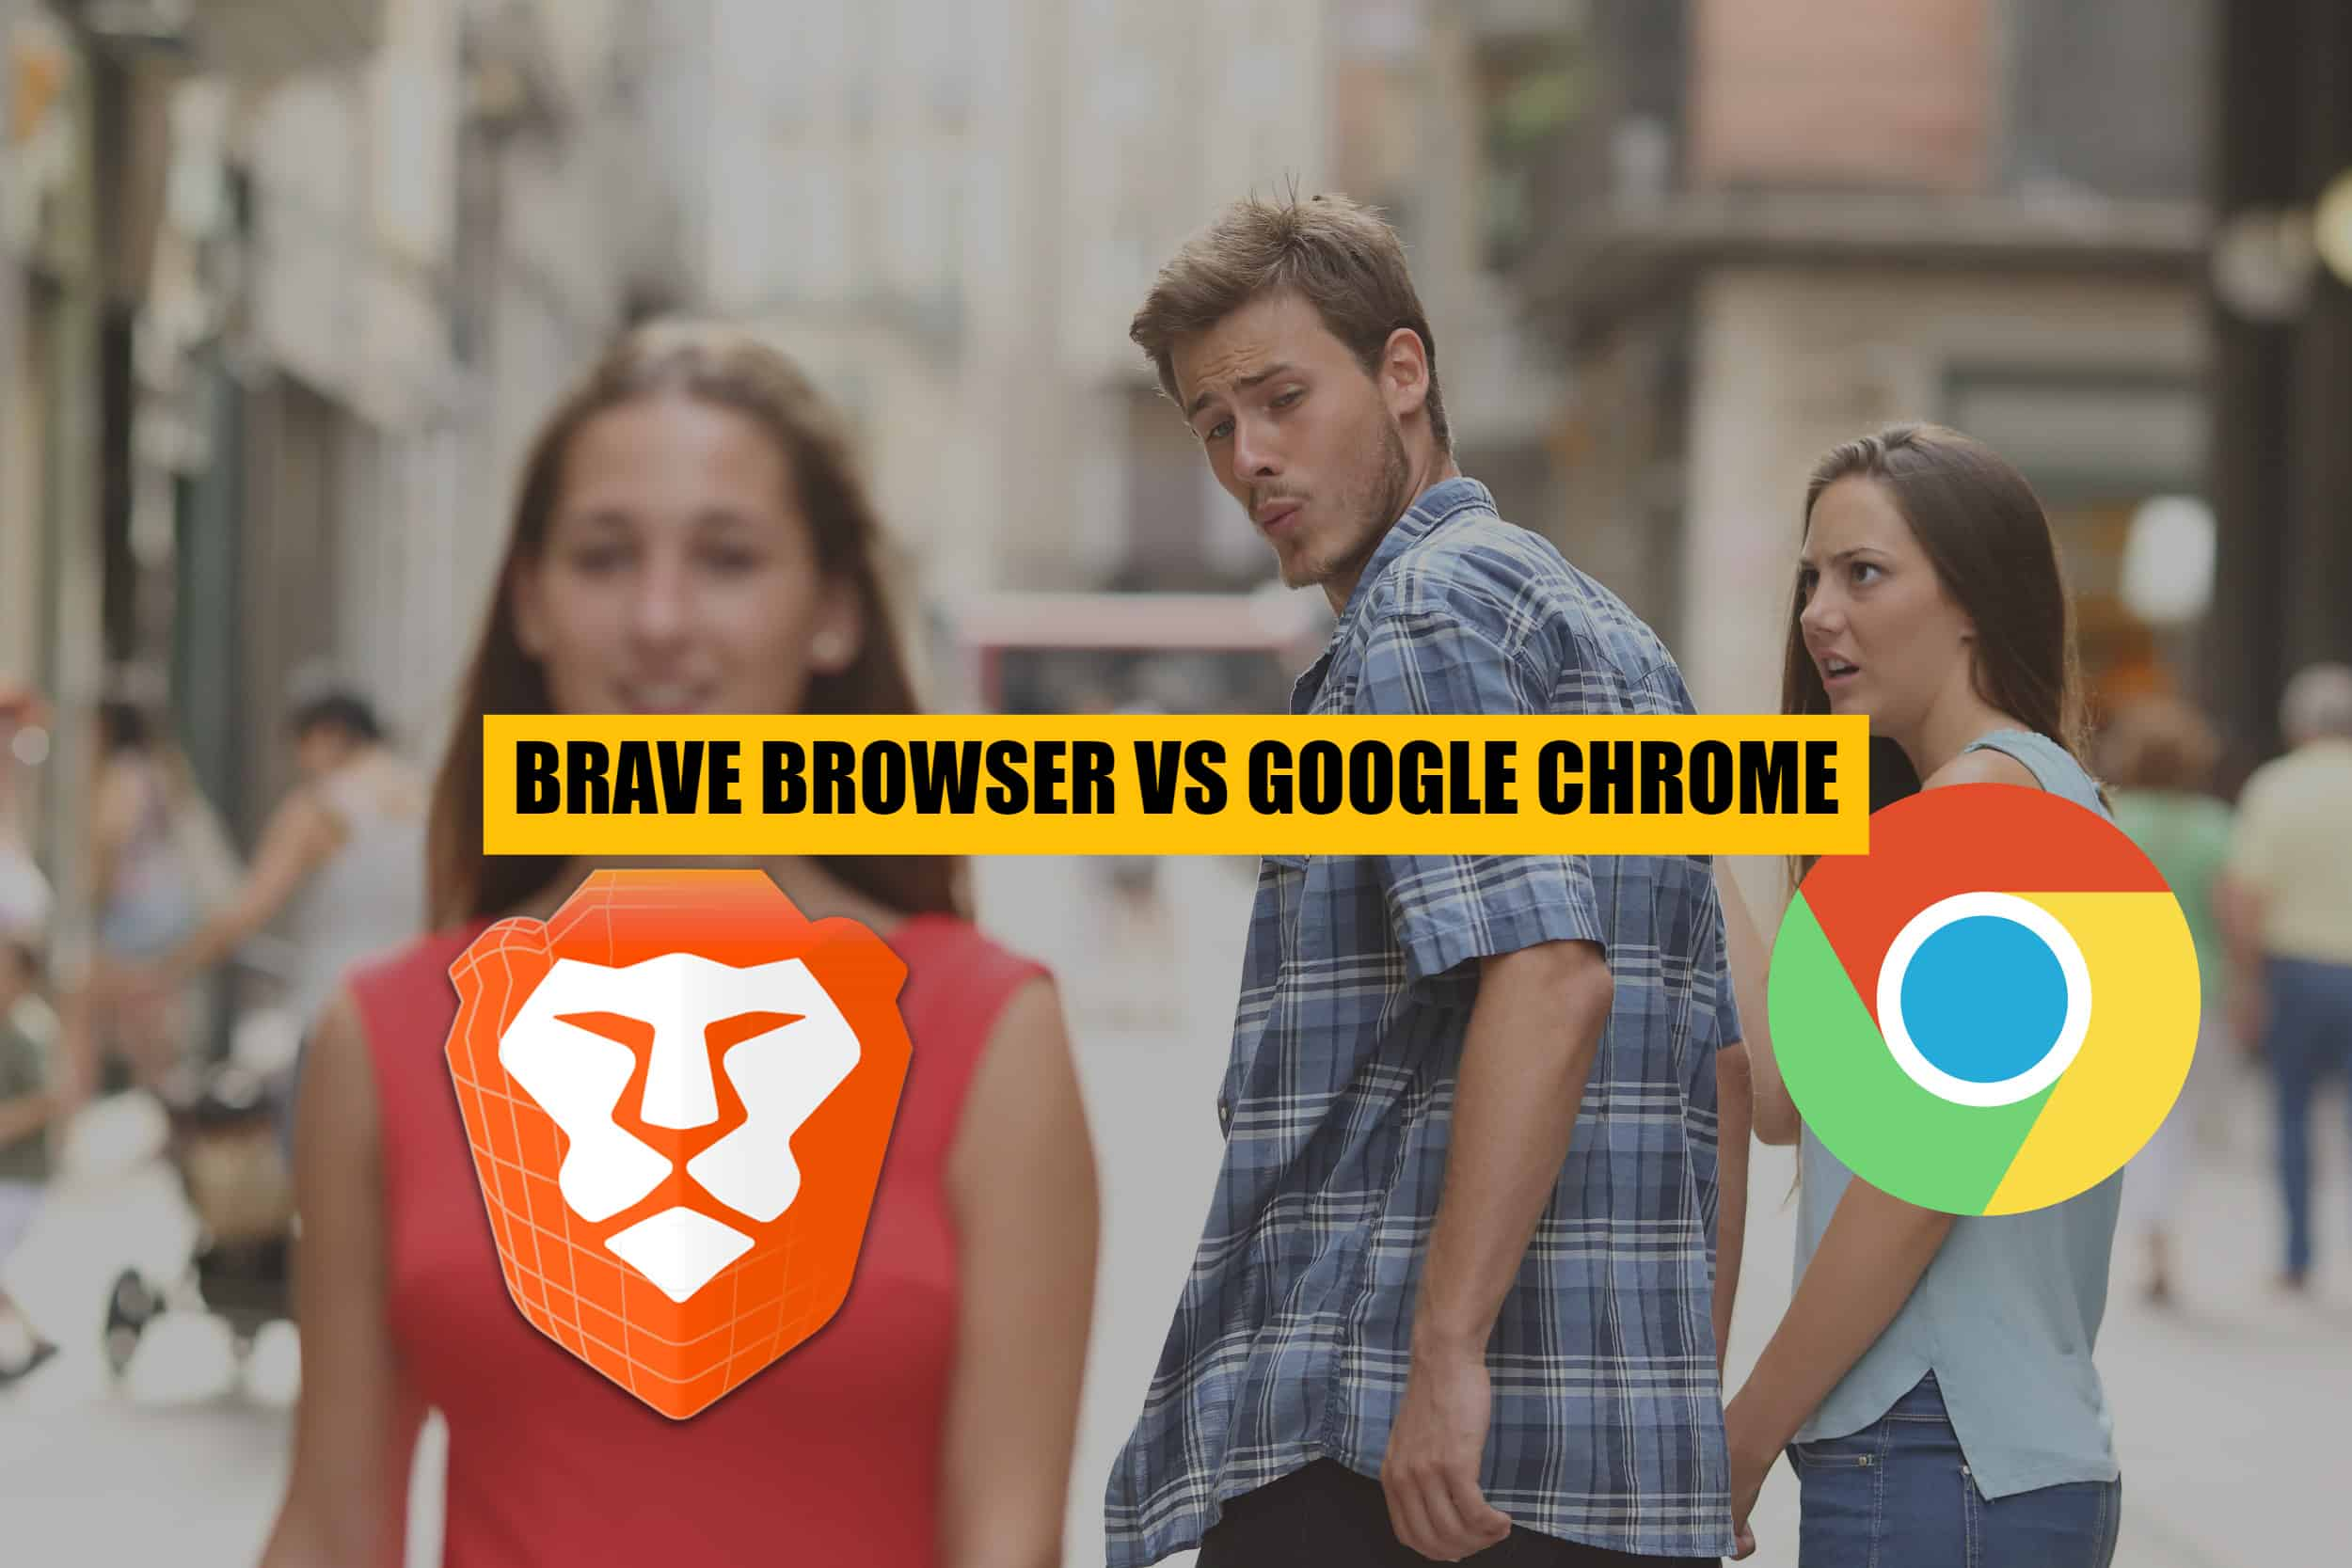 distracted-boyfriend-brave-browser-vs-google-chrome-meme